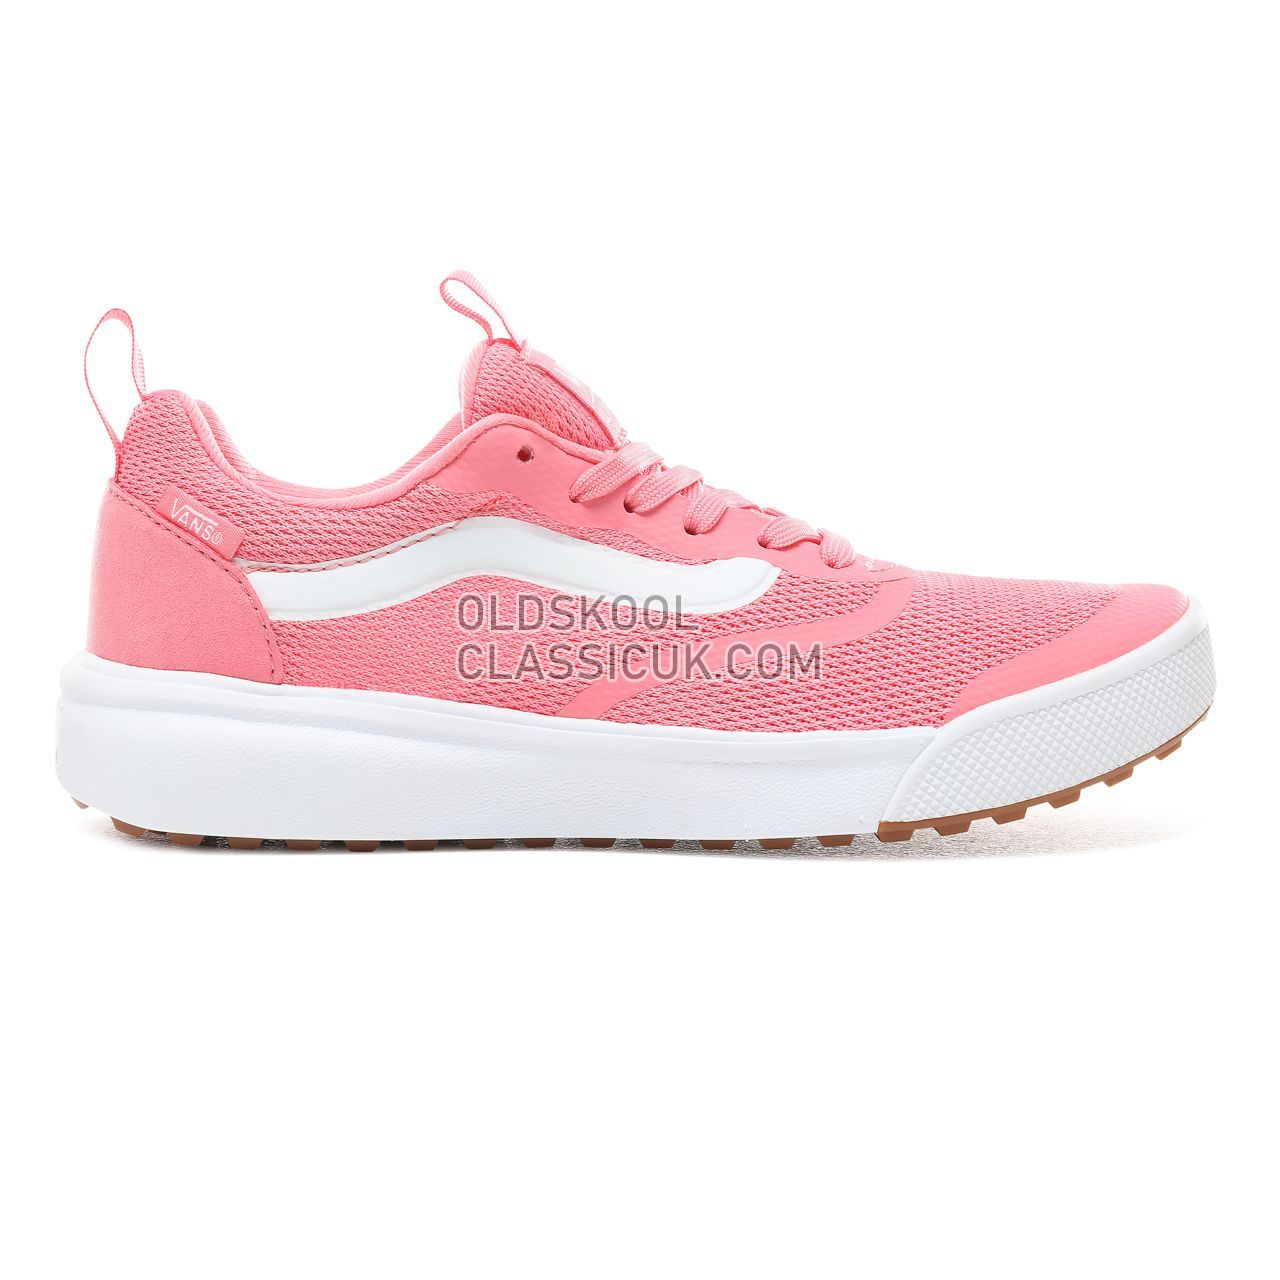 5e518078b8bc Vans Ultrarange Rapidweld Sneakers Womens Strawberry Pink VN0A3MVUUV6 Shoes  ...